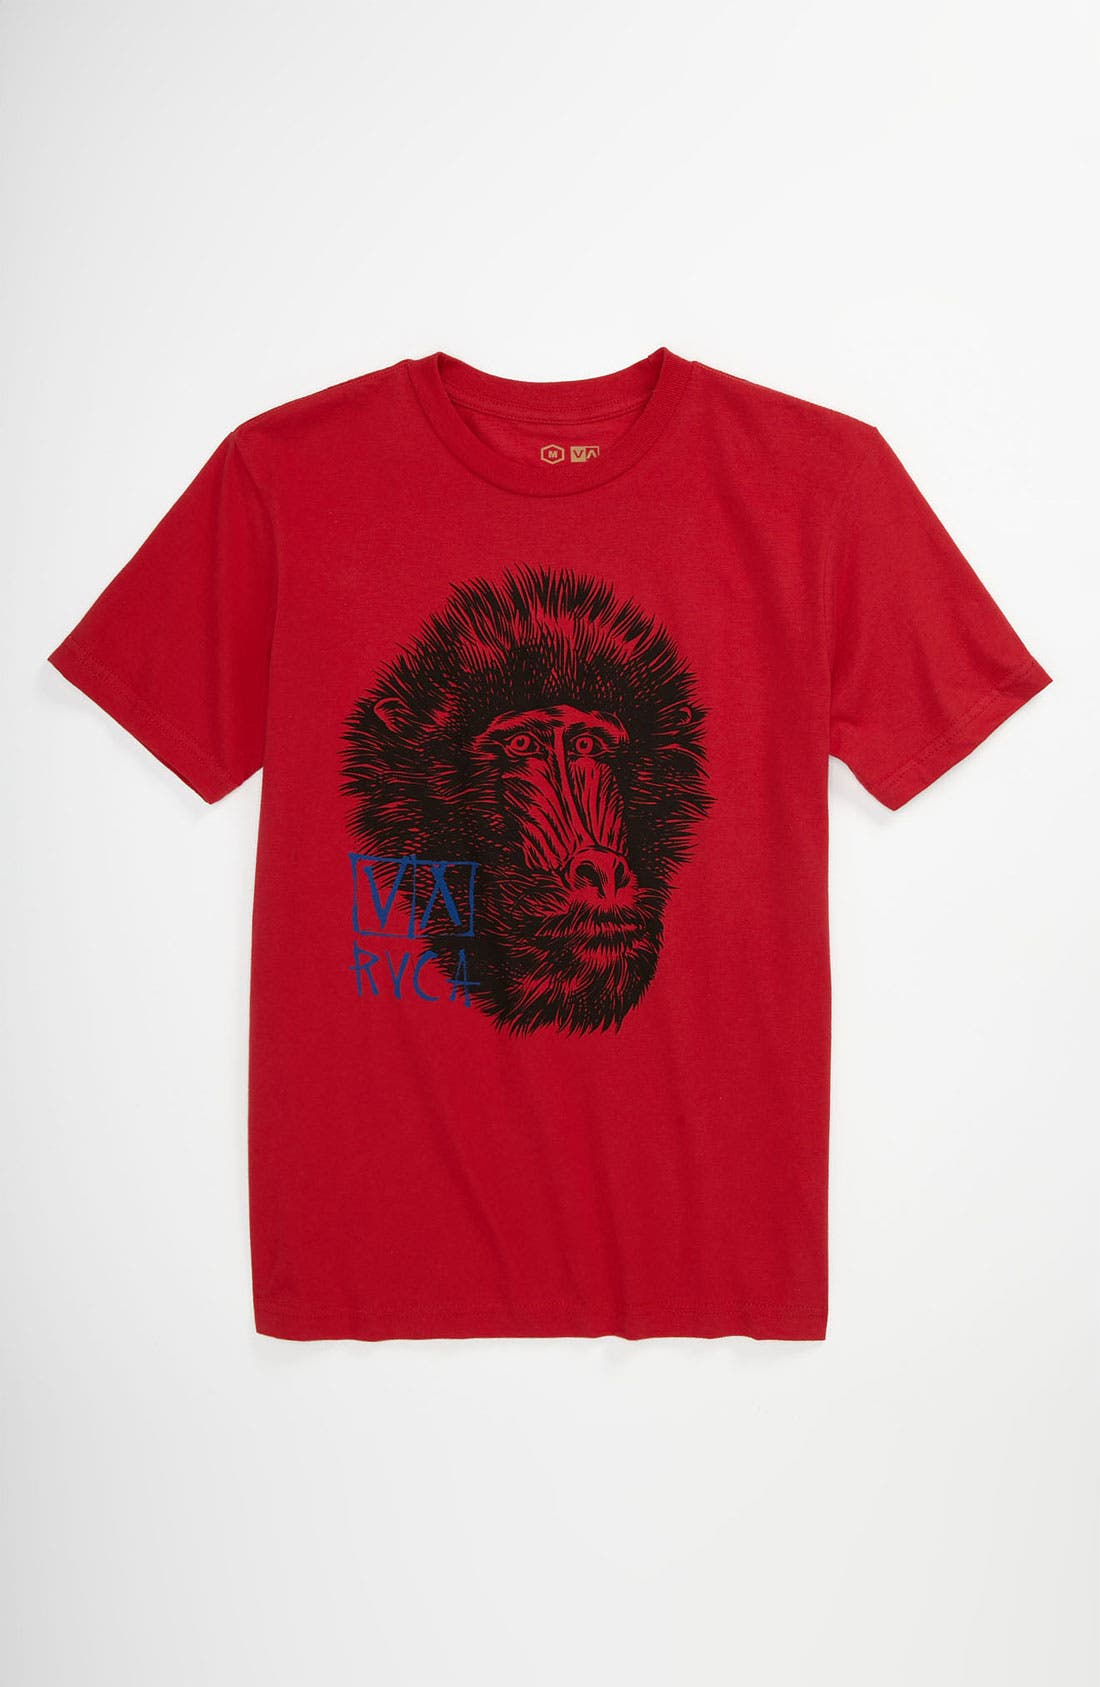 Alternate Image 1 Selected - RVCA 'Mandrill' T-Shirt (Big Boys)